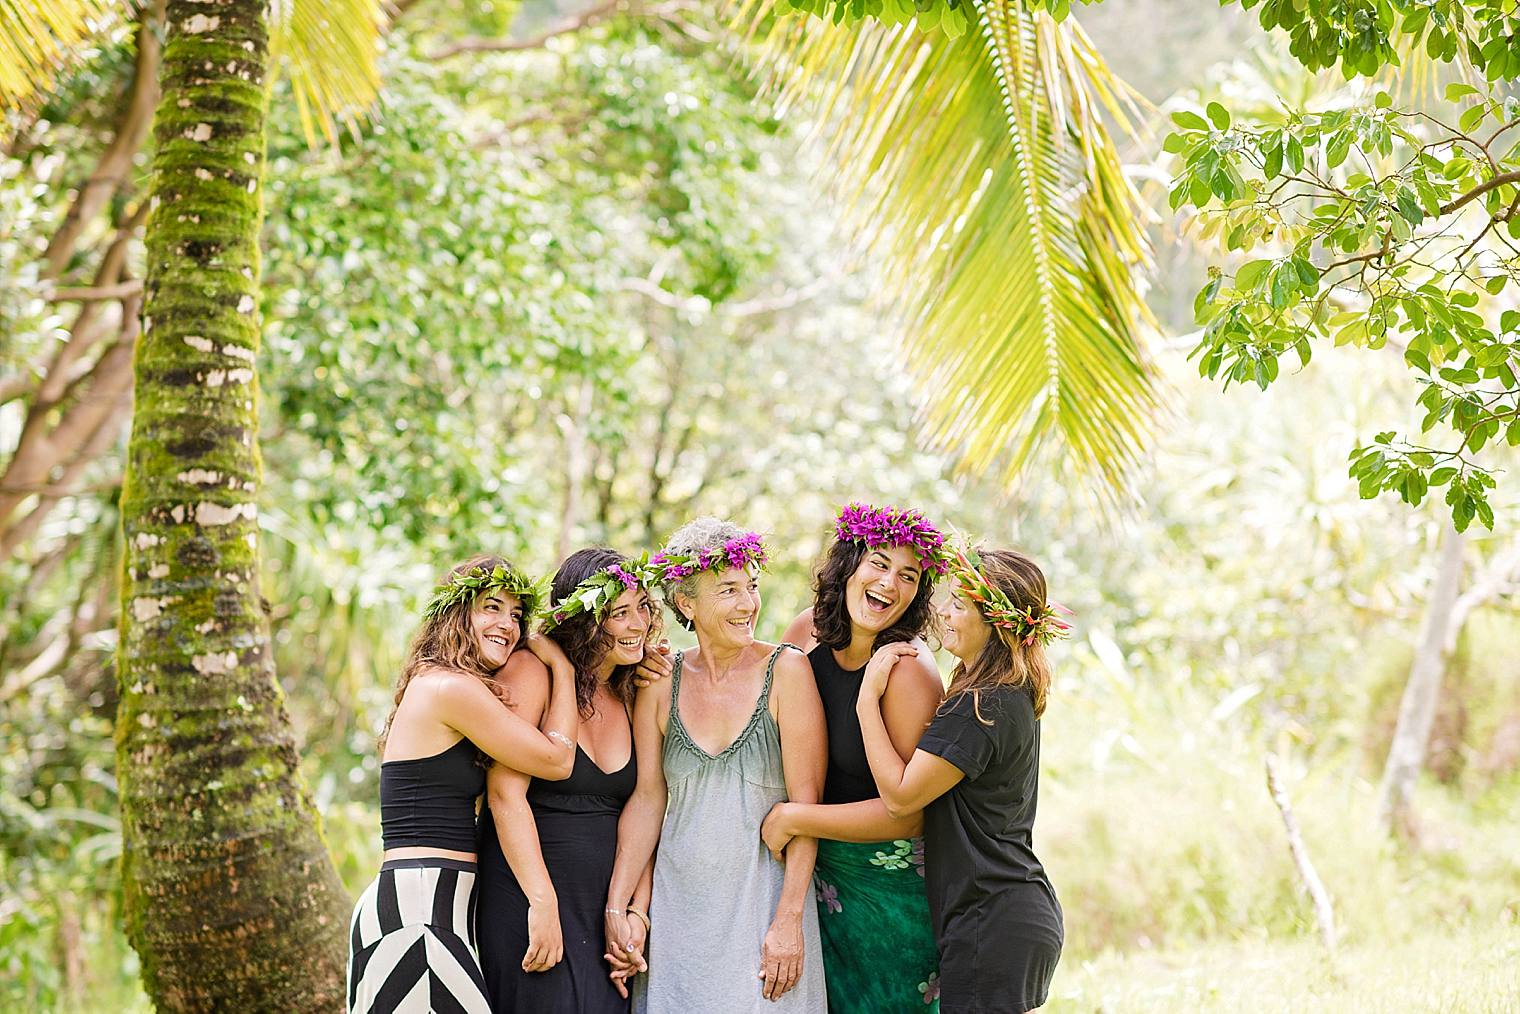 An Afternoon with the Amicos | Maui Lifestyle Photographer